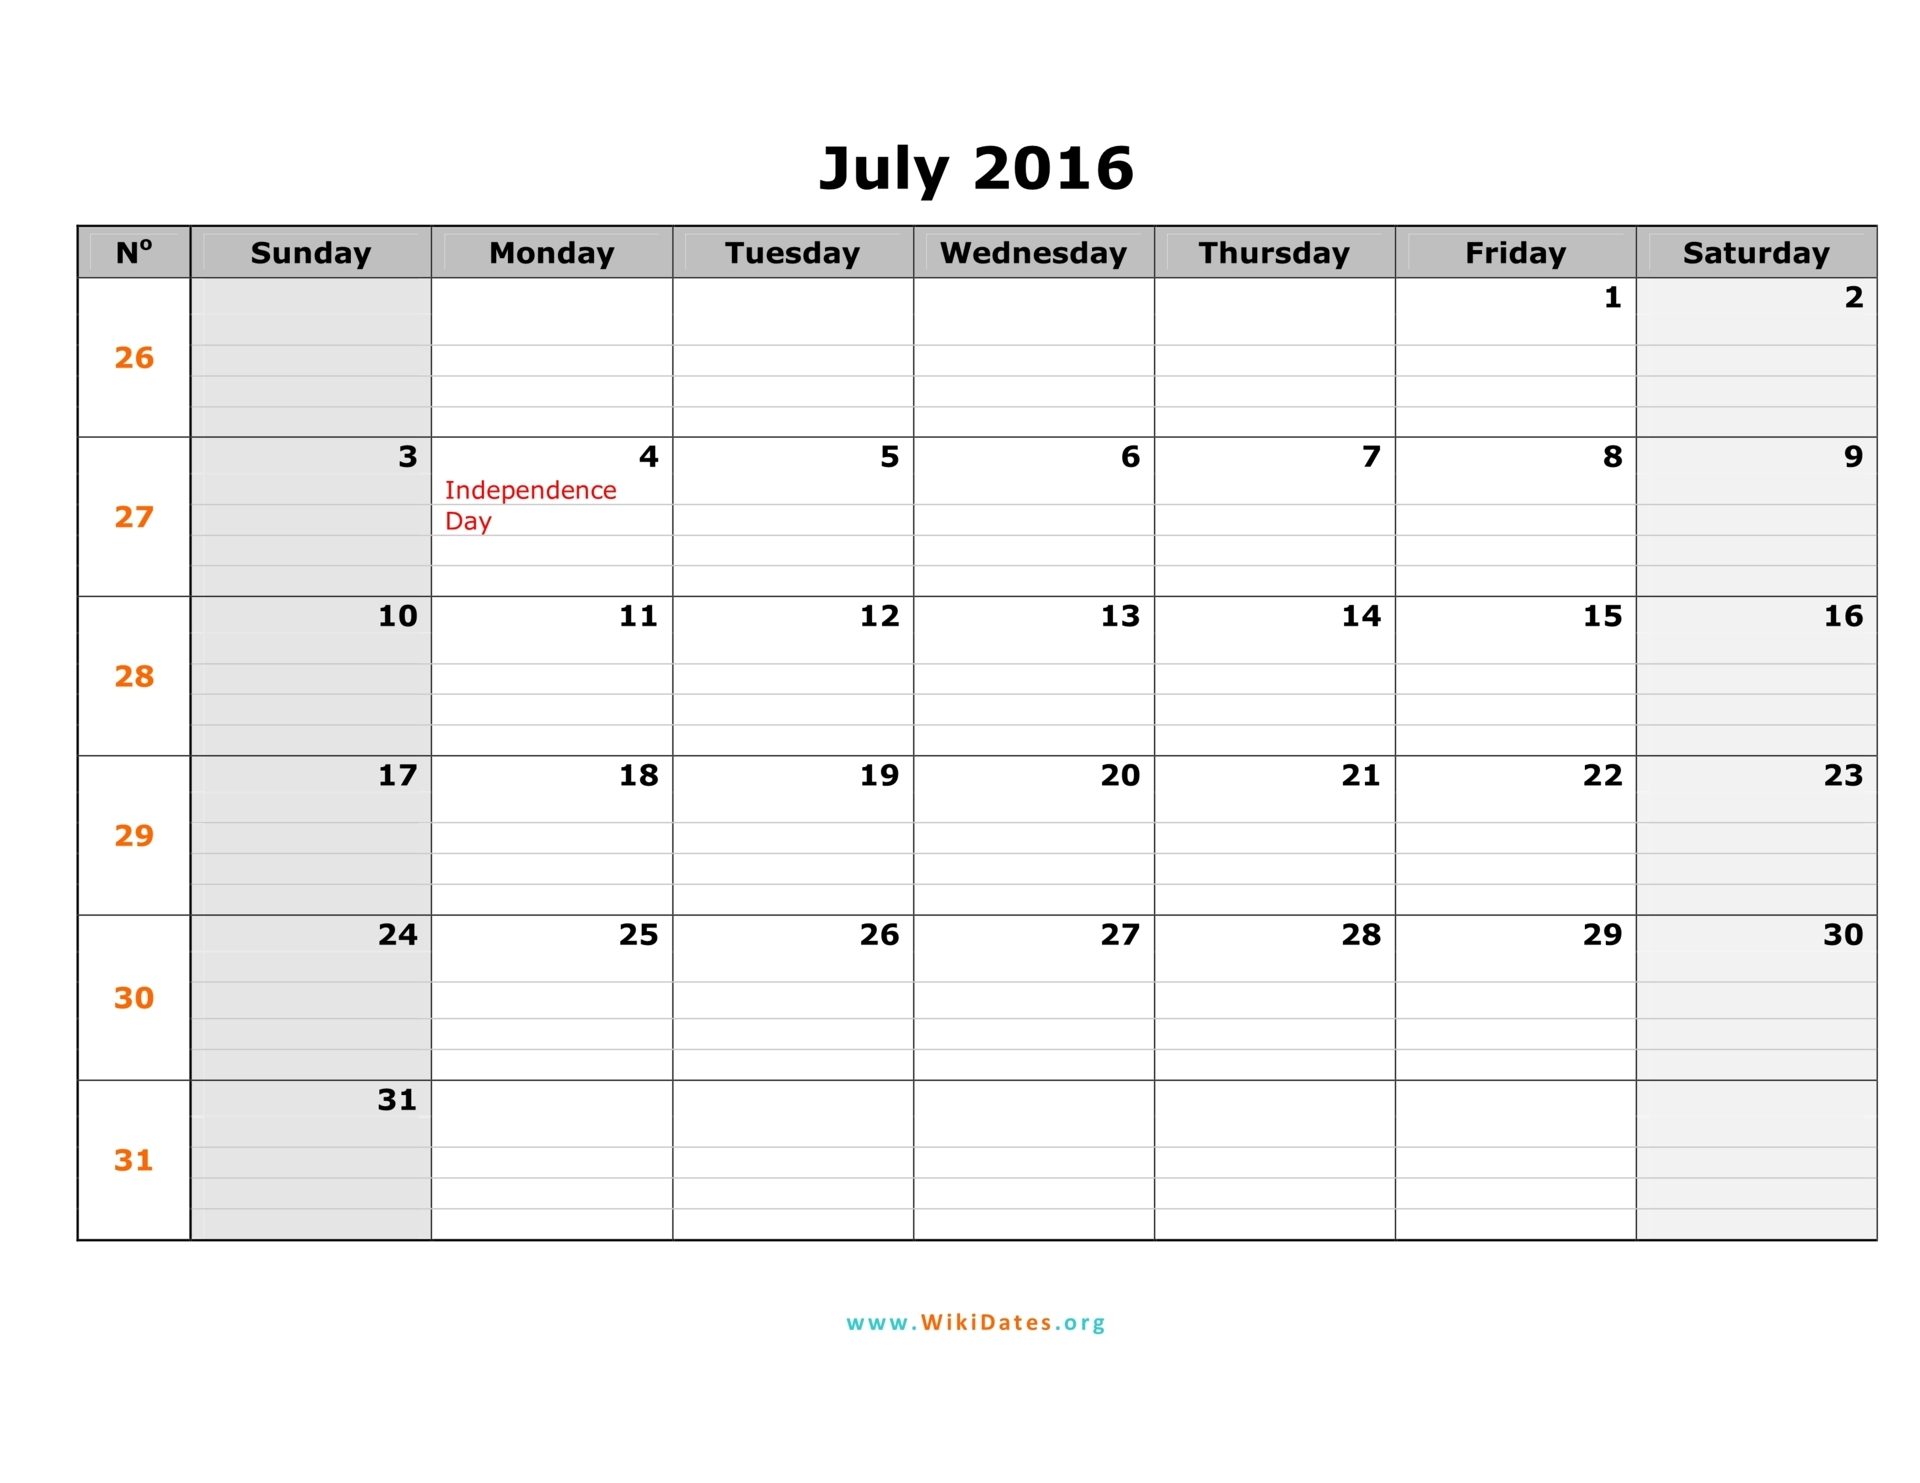 July 2016 Calendar | Fotolip.Rich image and wallpaper